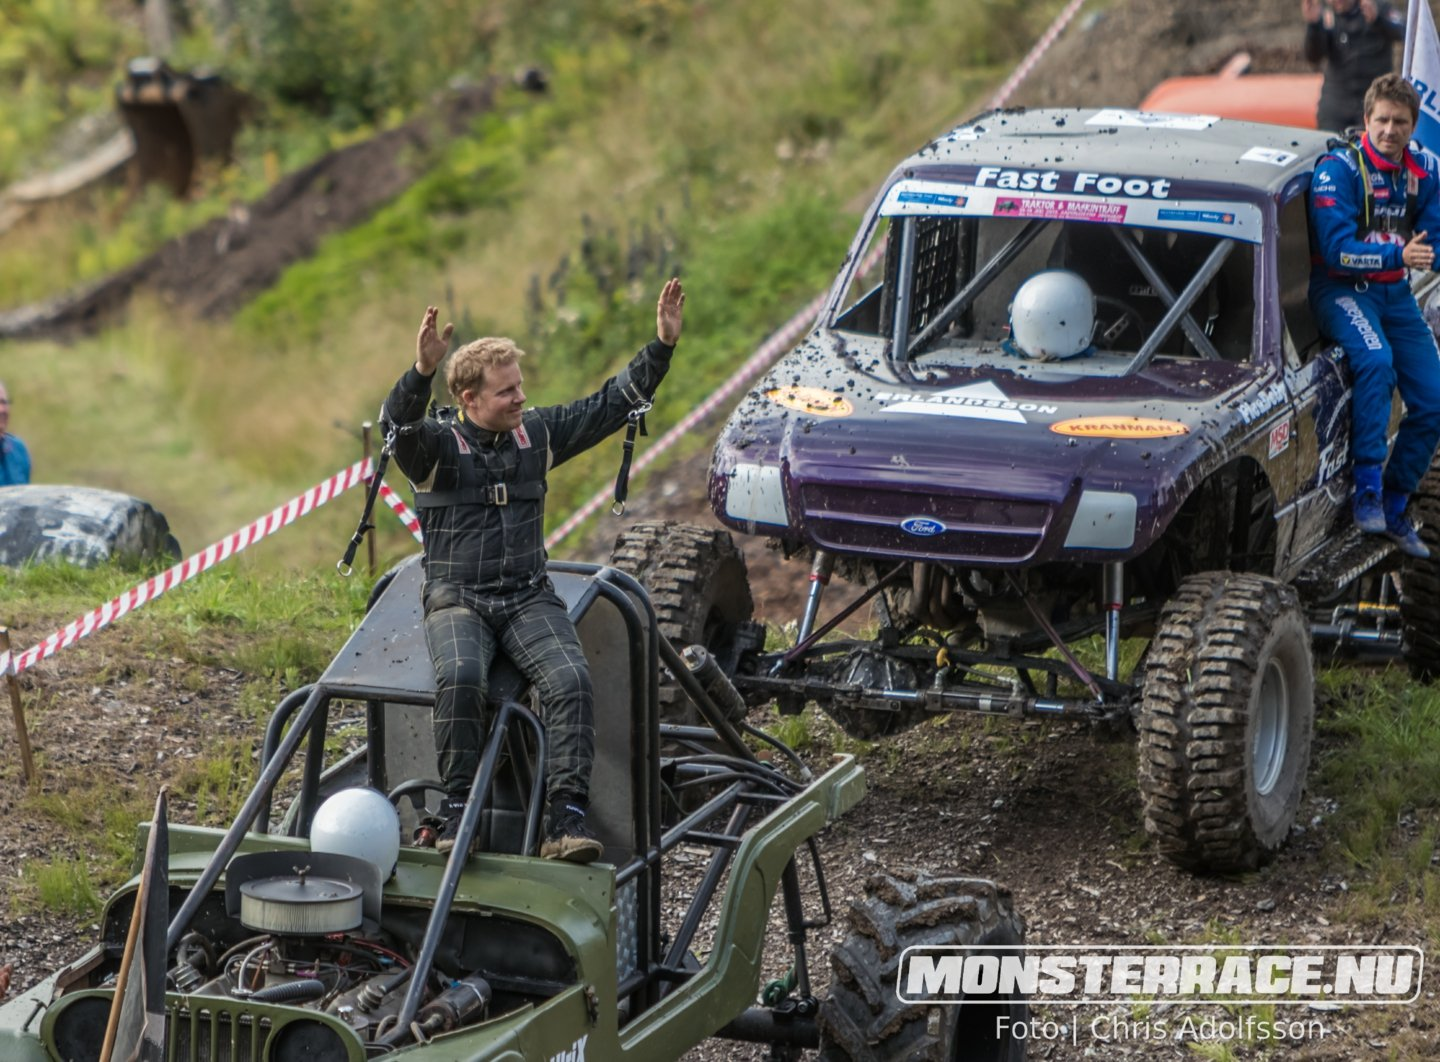 Monsterrace Ed dag 1 (91)